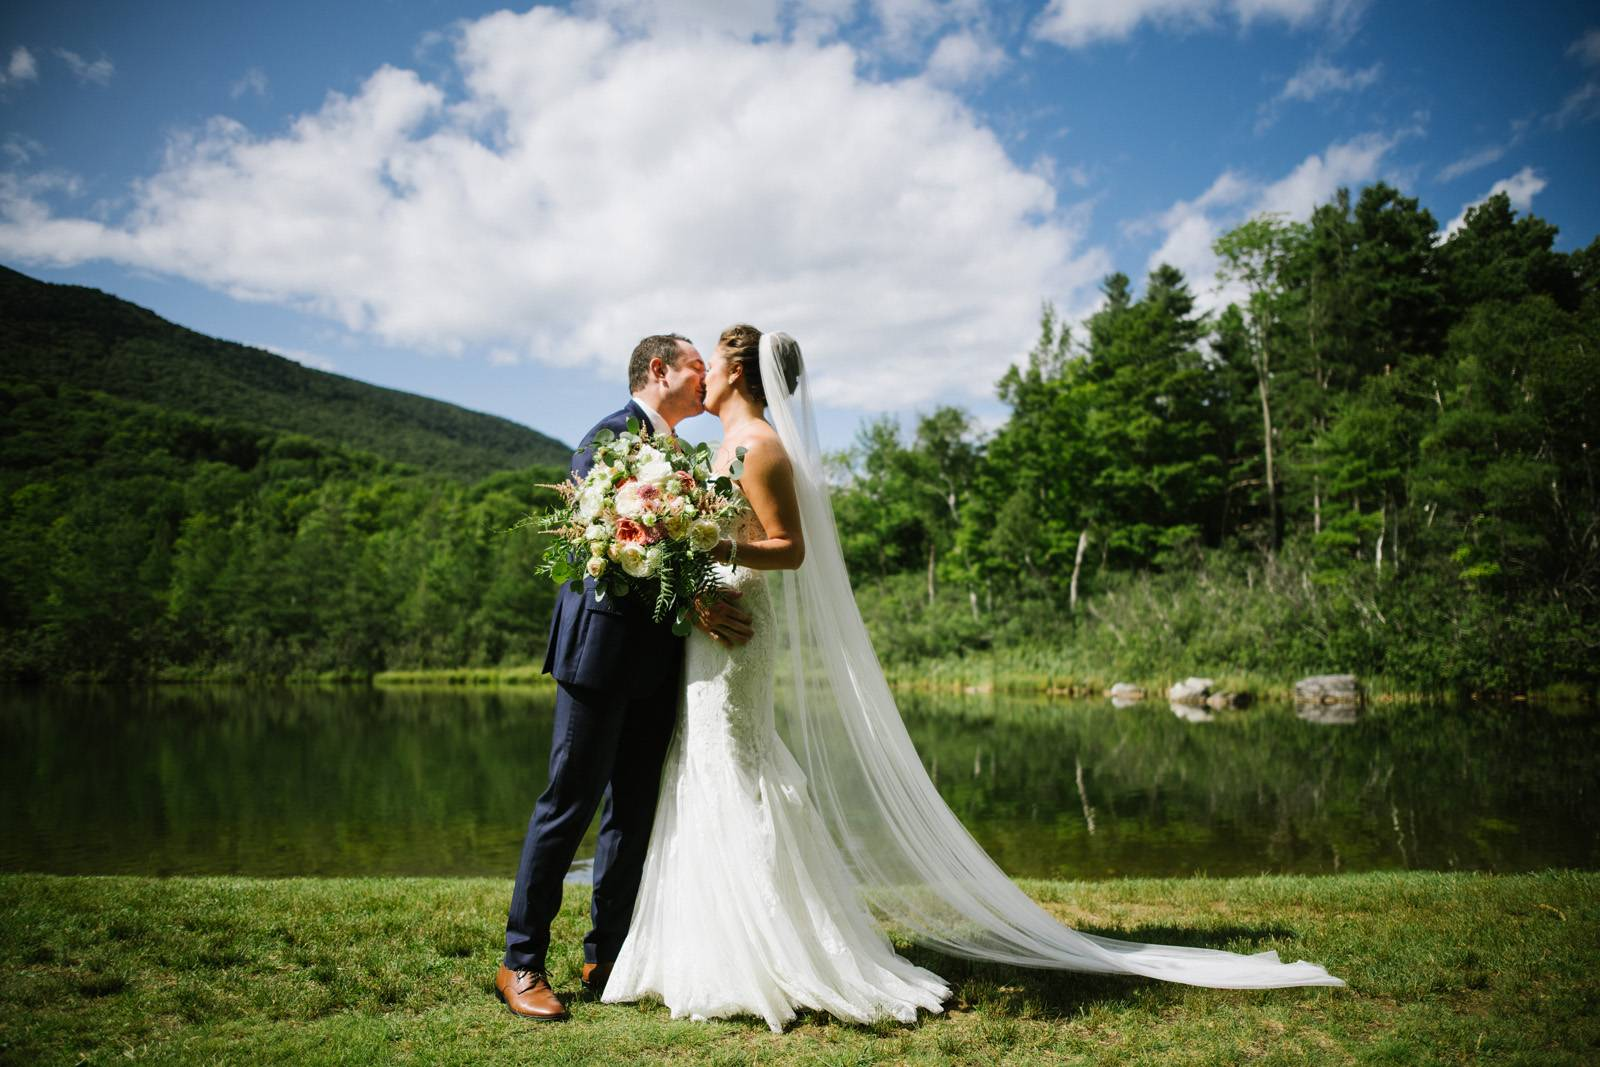 Bride and groom first look and kiss at the Equinox on summer wedding day